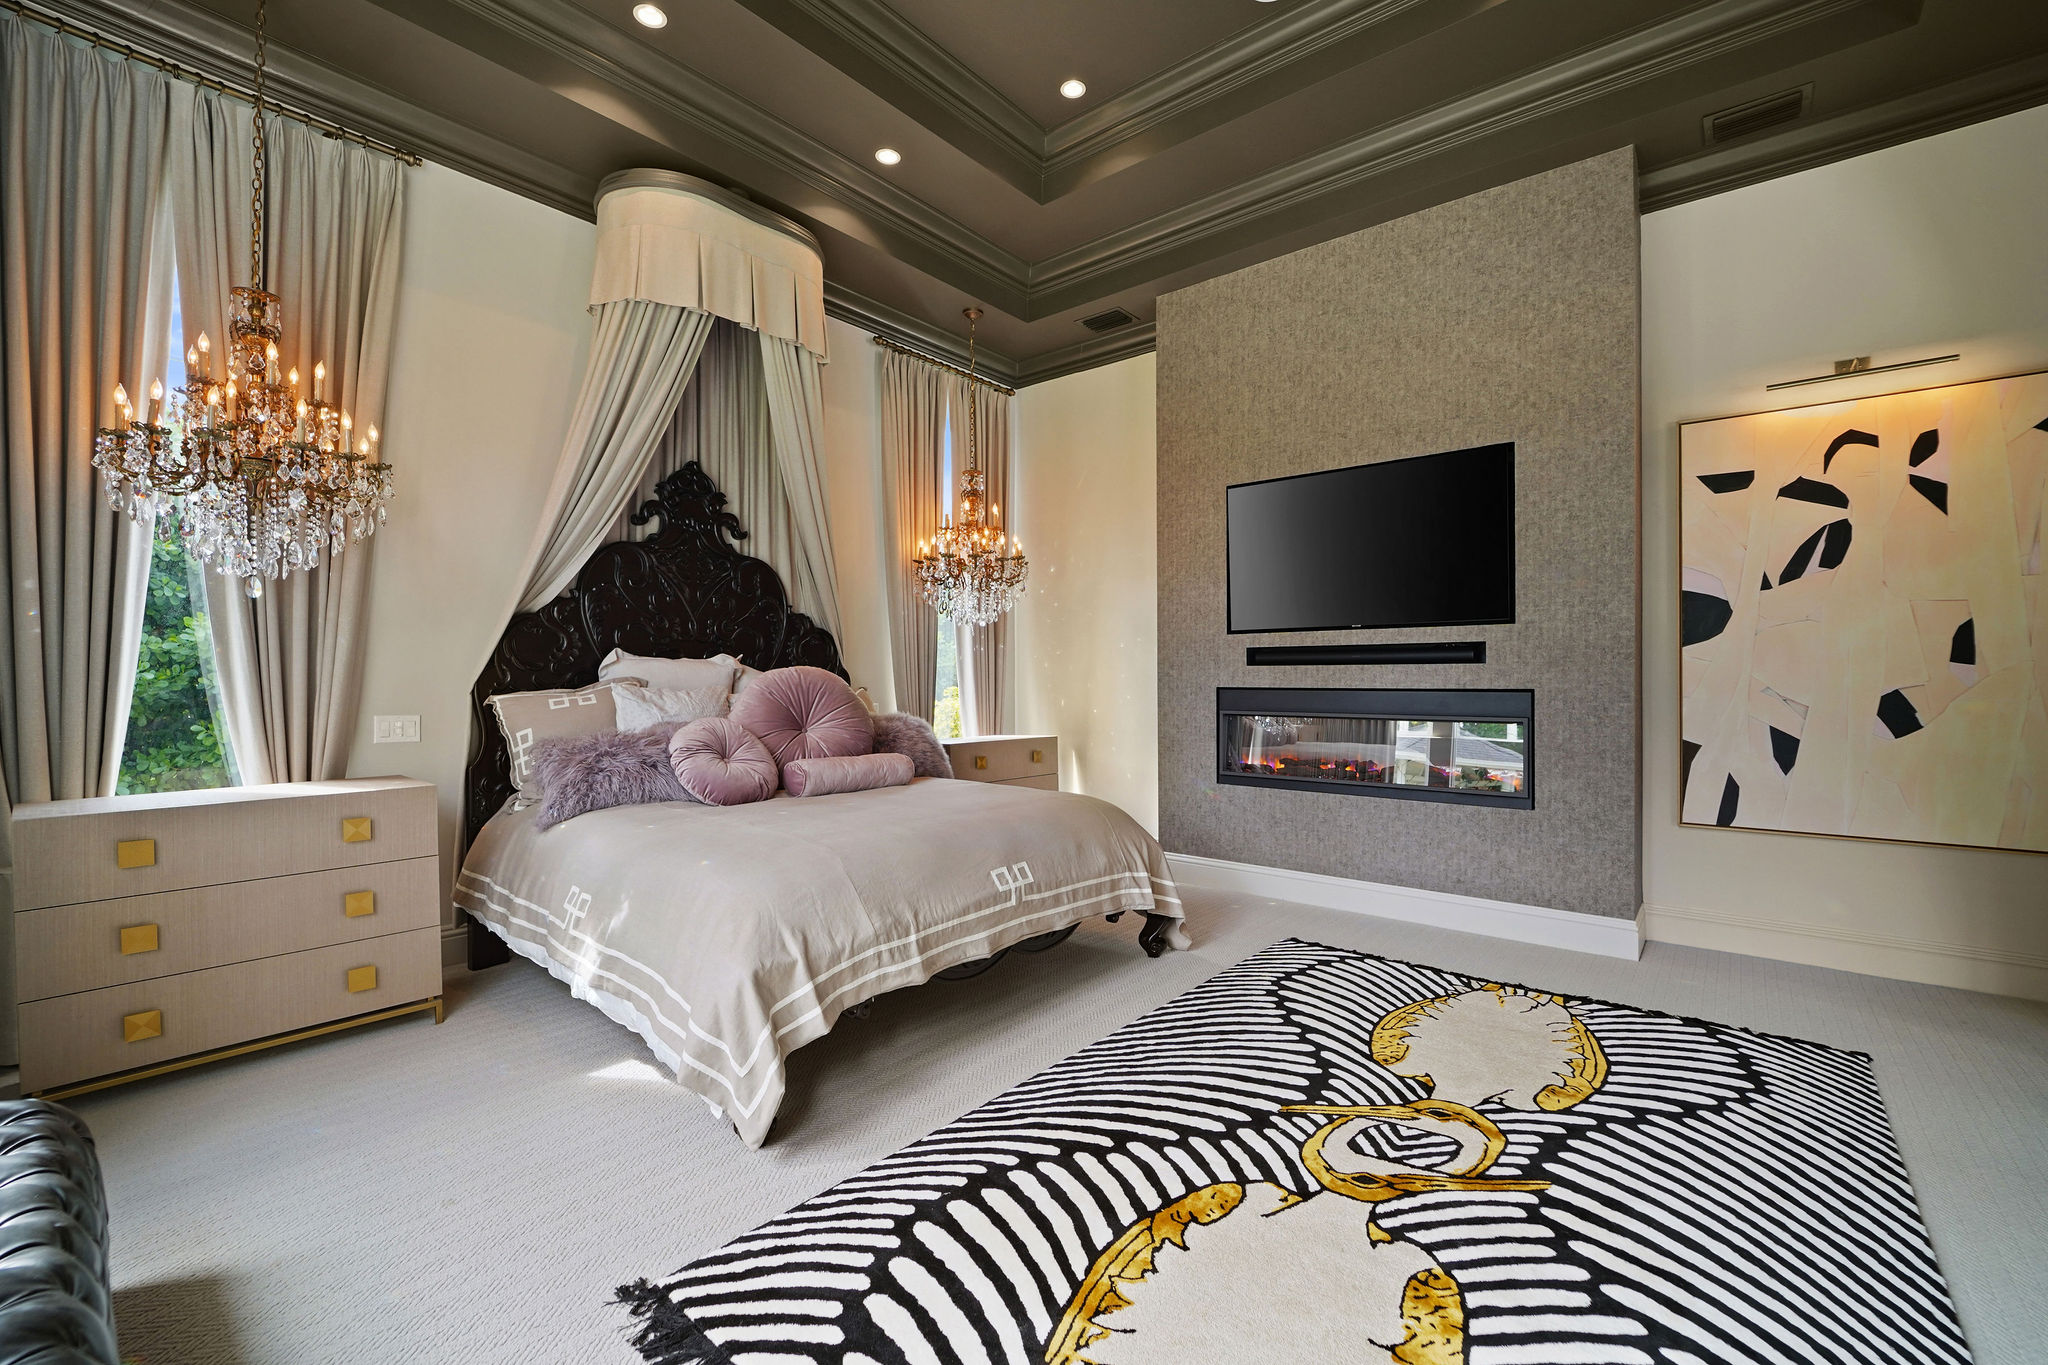 A Romantic Vibe With Eclectic Accents - The New Project by Hilary White With Rug'Society